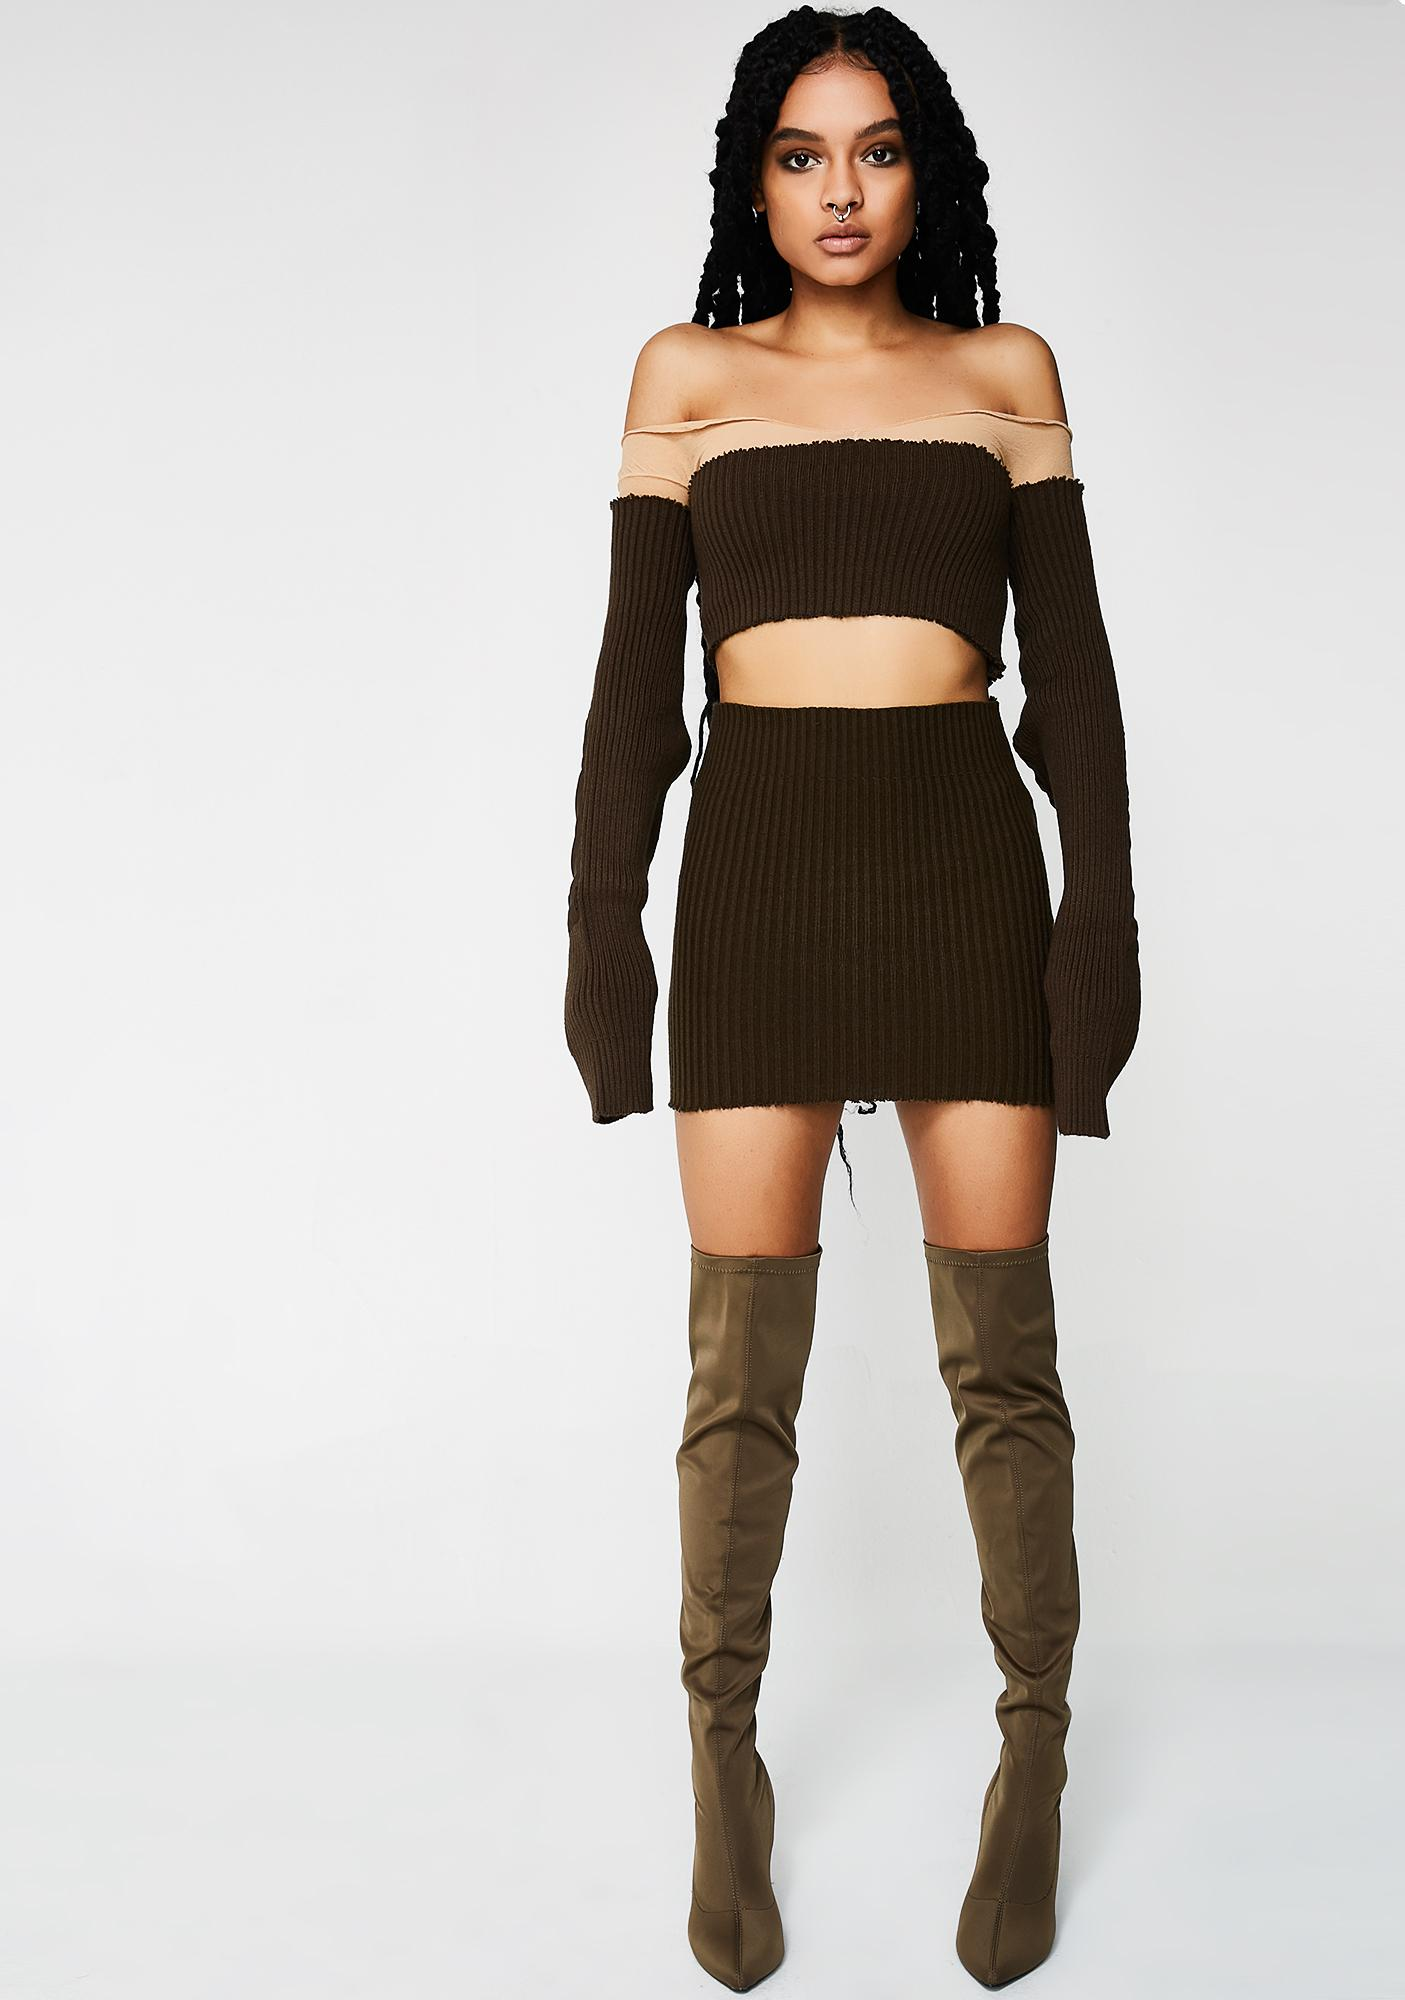 Plugged NYC Shoulderless Crop Top